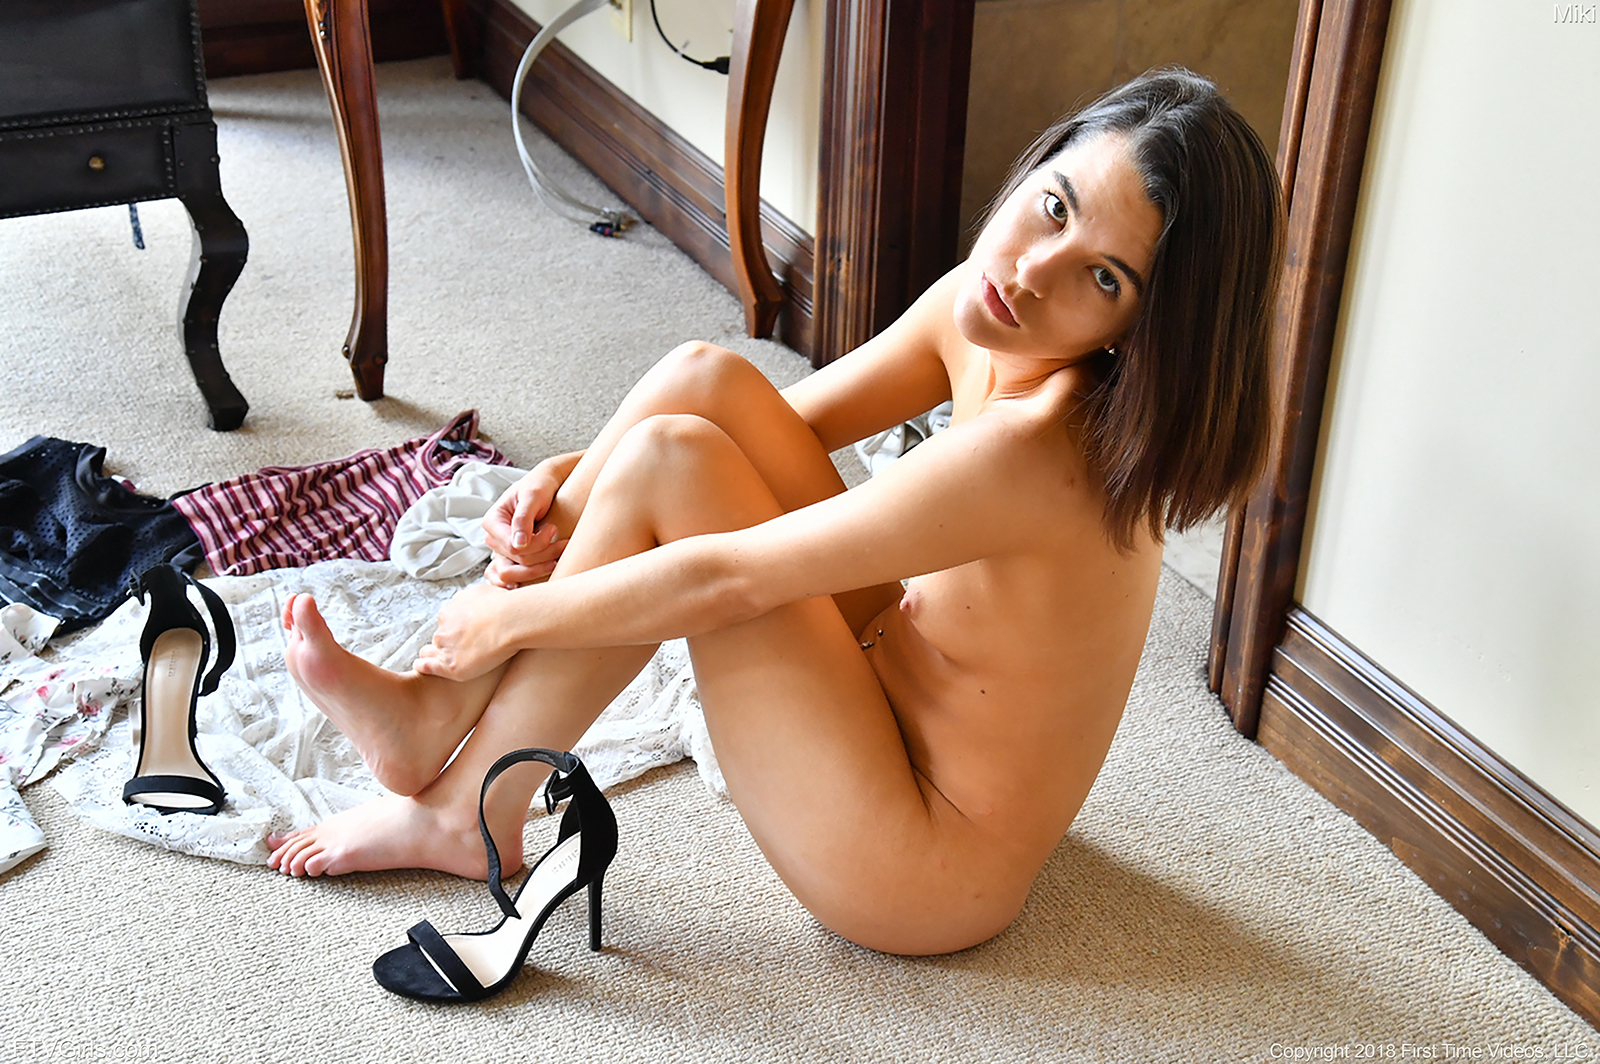 beautiful brunette needs big toys to get satisfied on her own #11